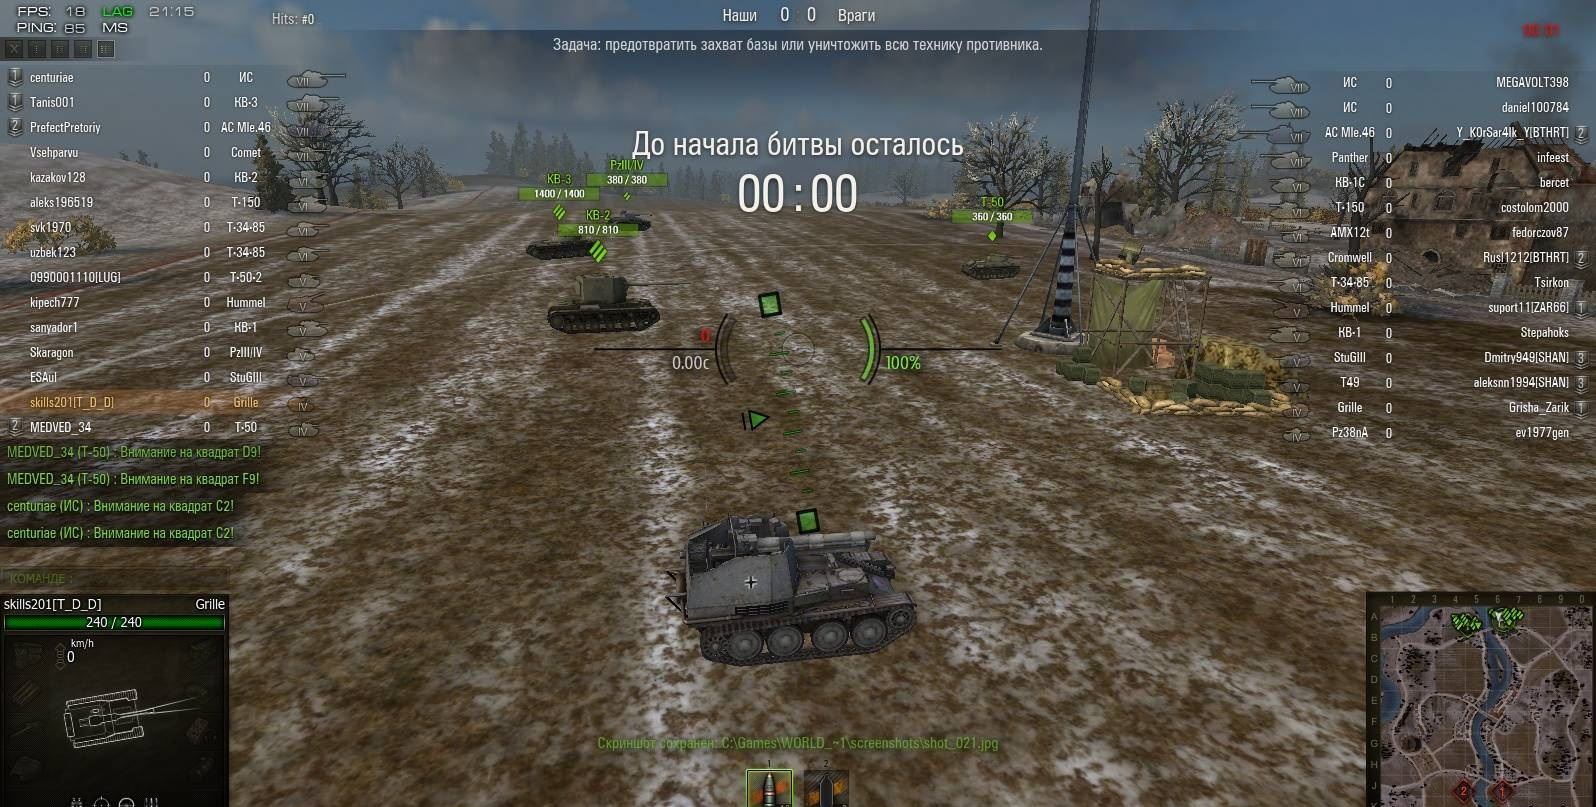 Мир танков (World of Tanks) Снимок из игры